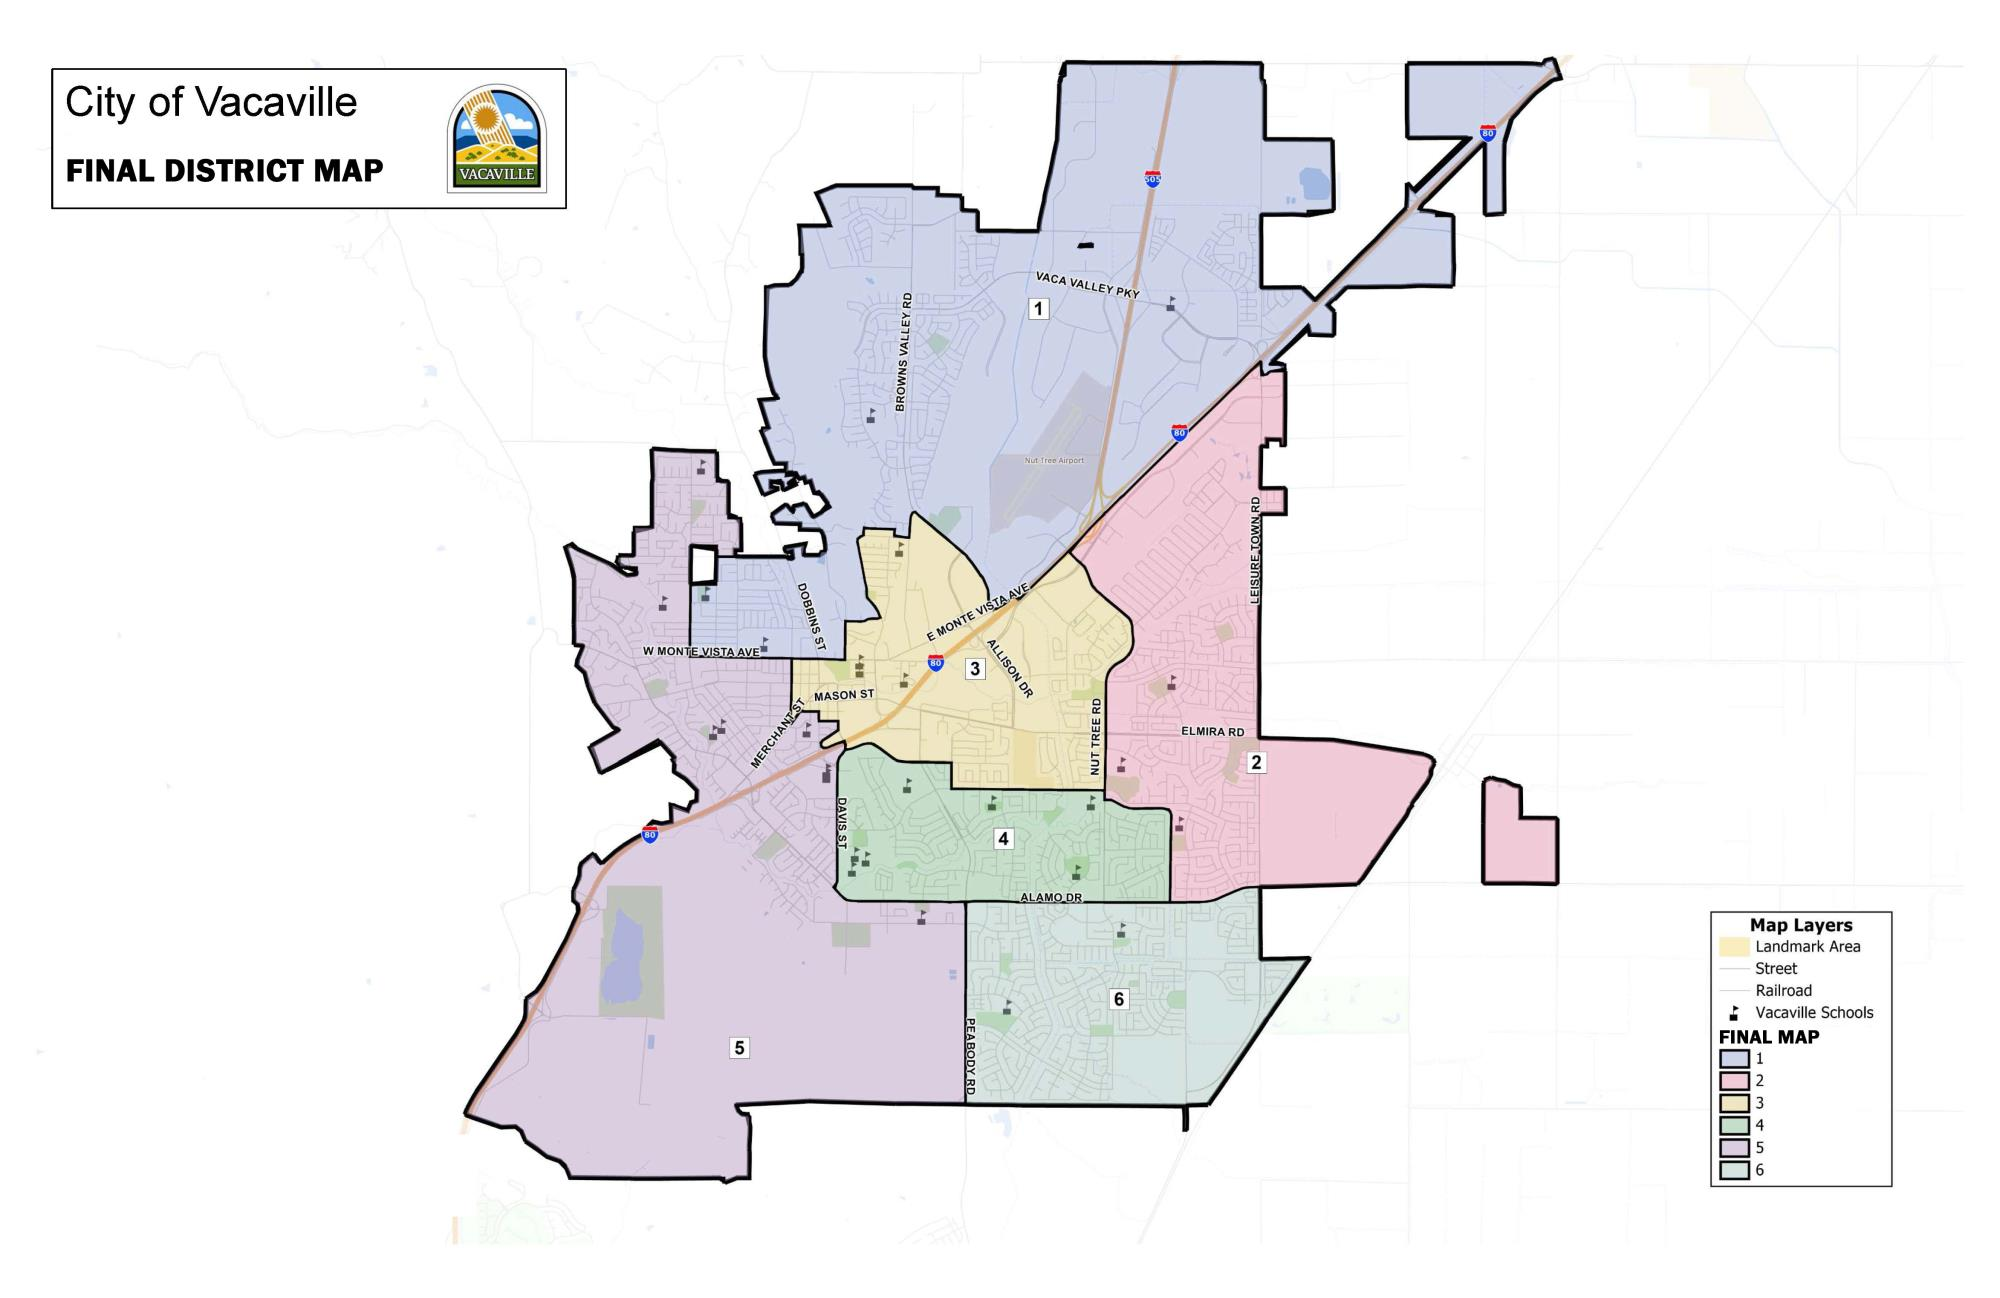 Map showing the six districts that were chosen by the Vacaville City Council.